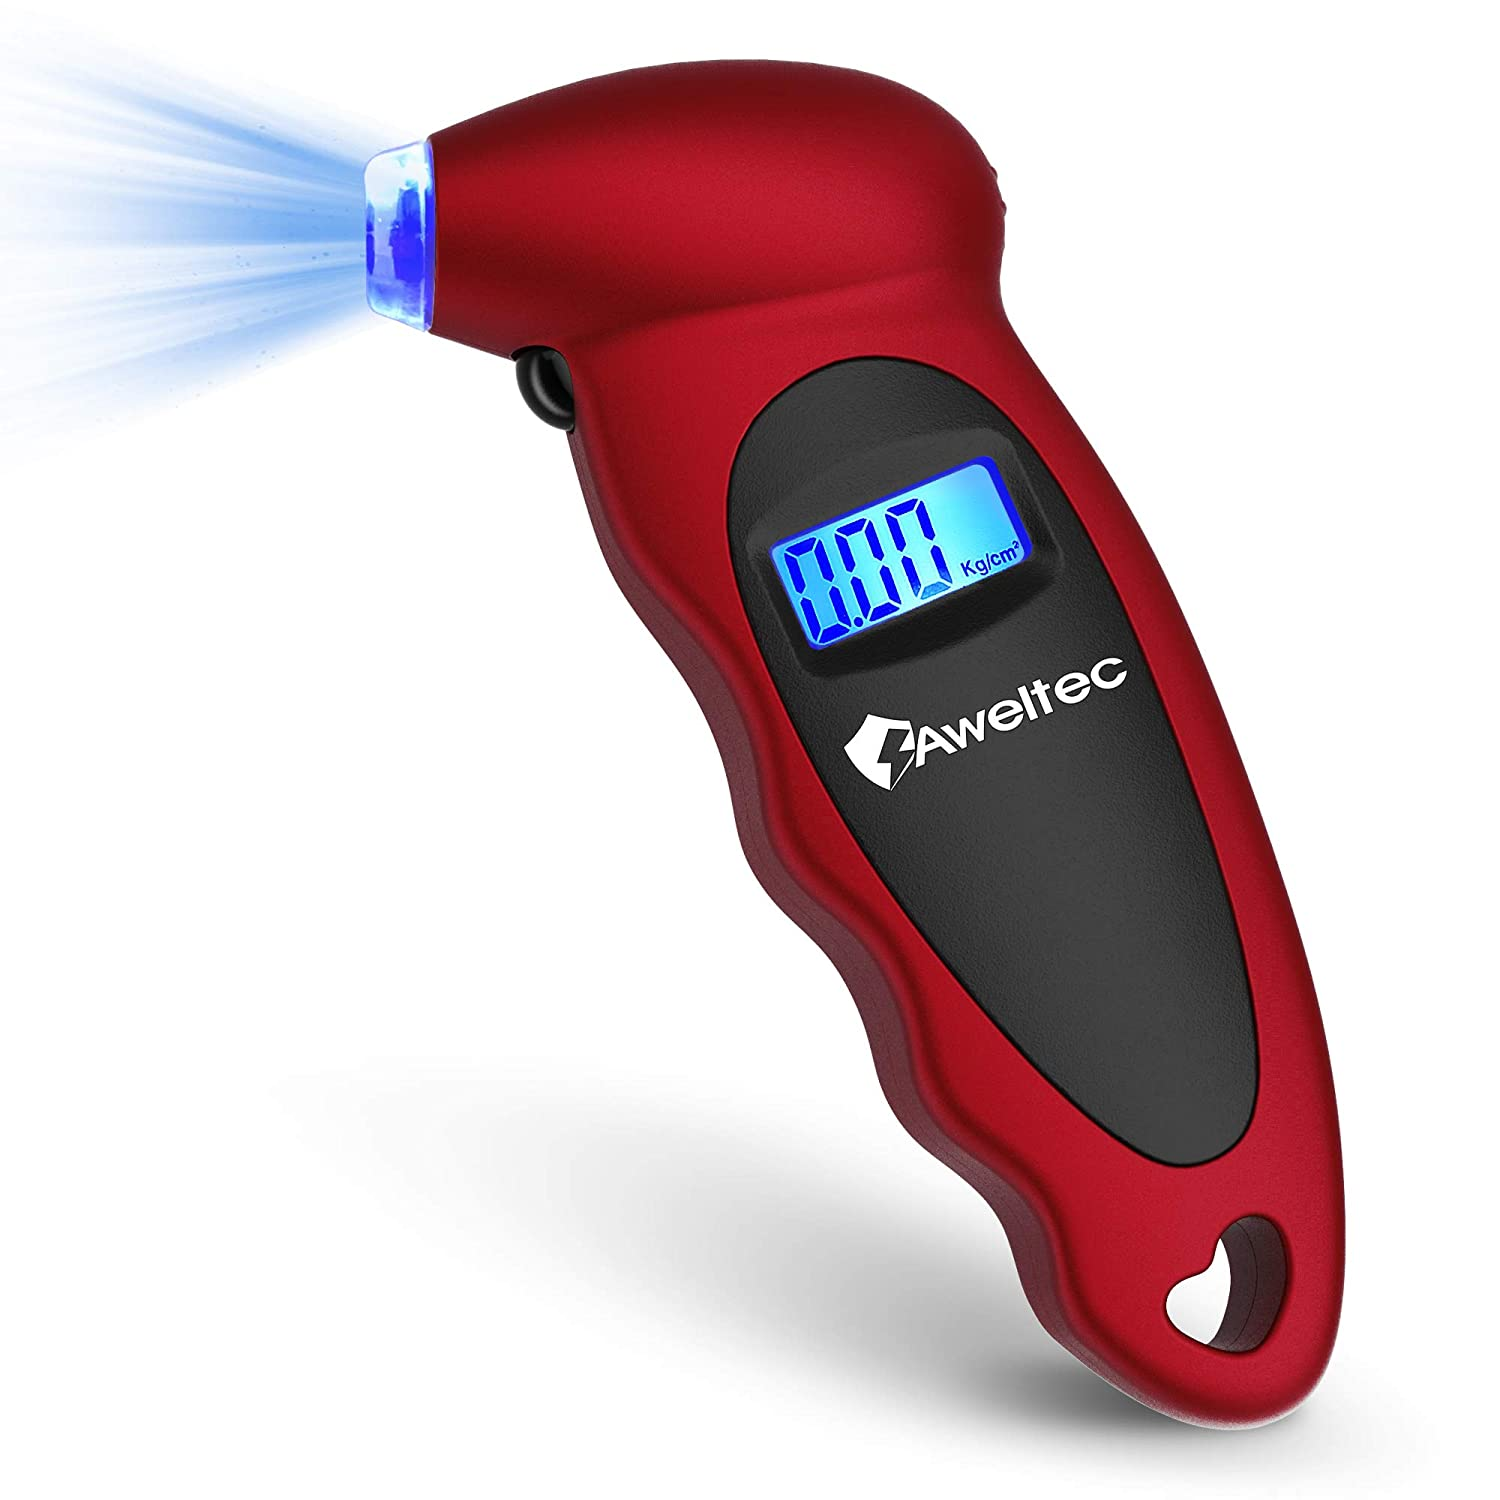 AWELTEC Digital Tire Pressure Gauge Quality Cheap mail order shopping inspection PSI Settings 150 Ga 4